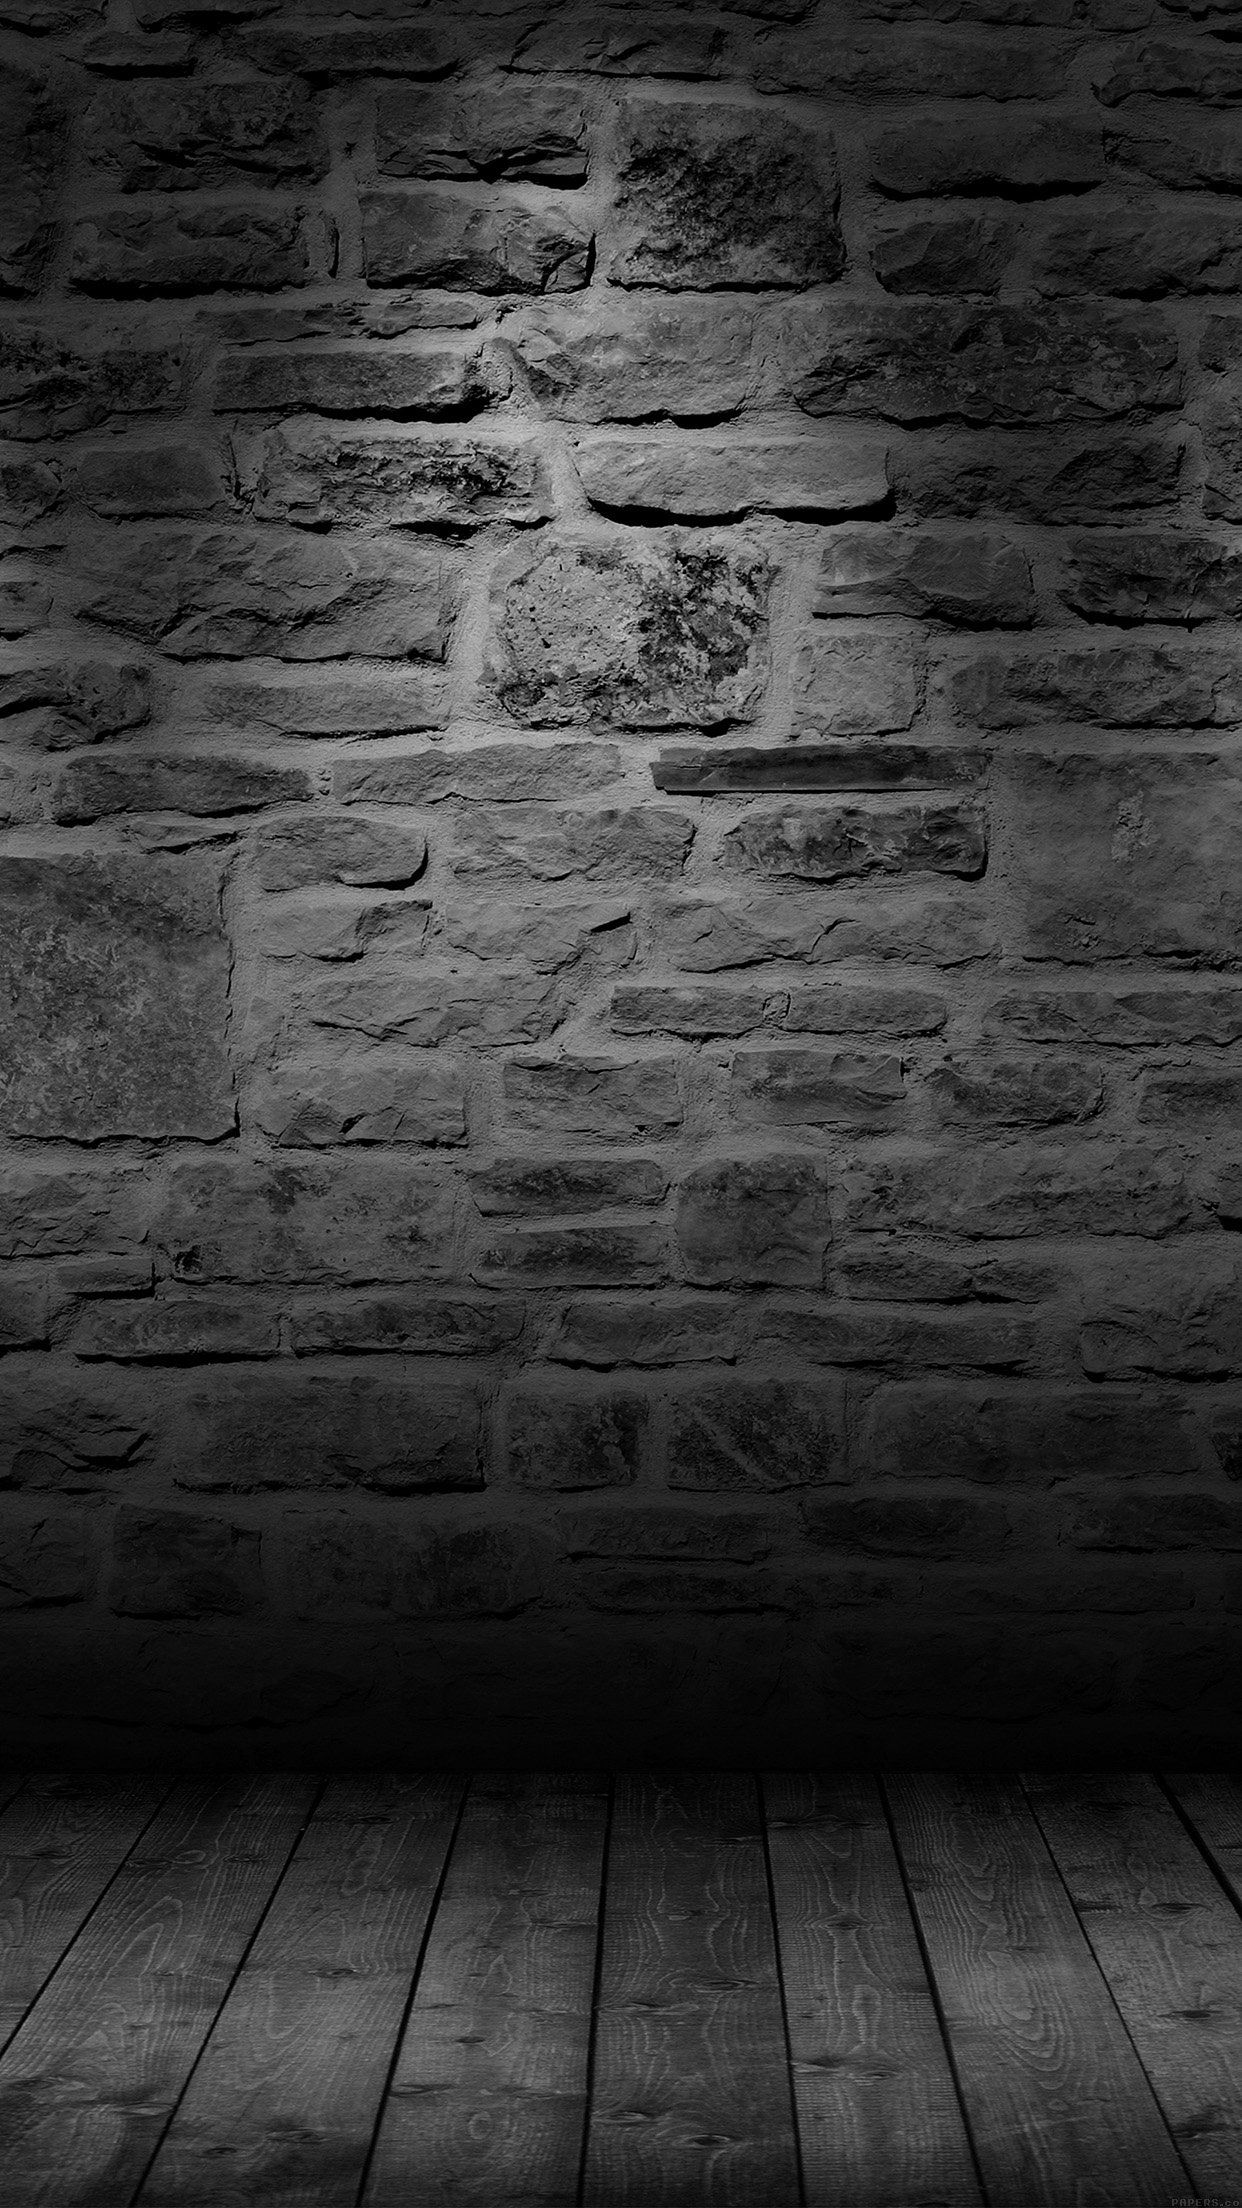 Wallpaper download for iphone - Wall Dark Bw Texture Pattern Iphone 6 Wallpaper Download Iphone Wallpapers Ipad Wallpapers One